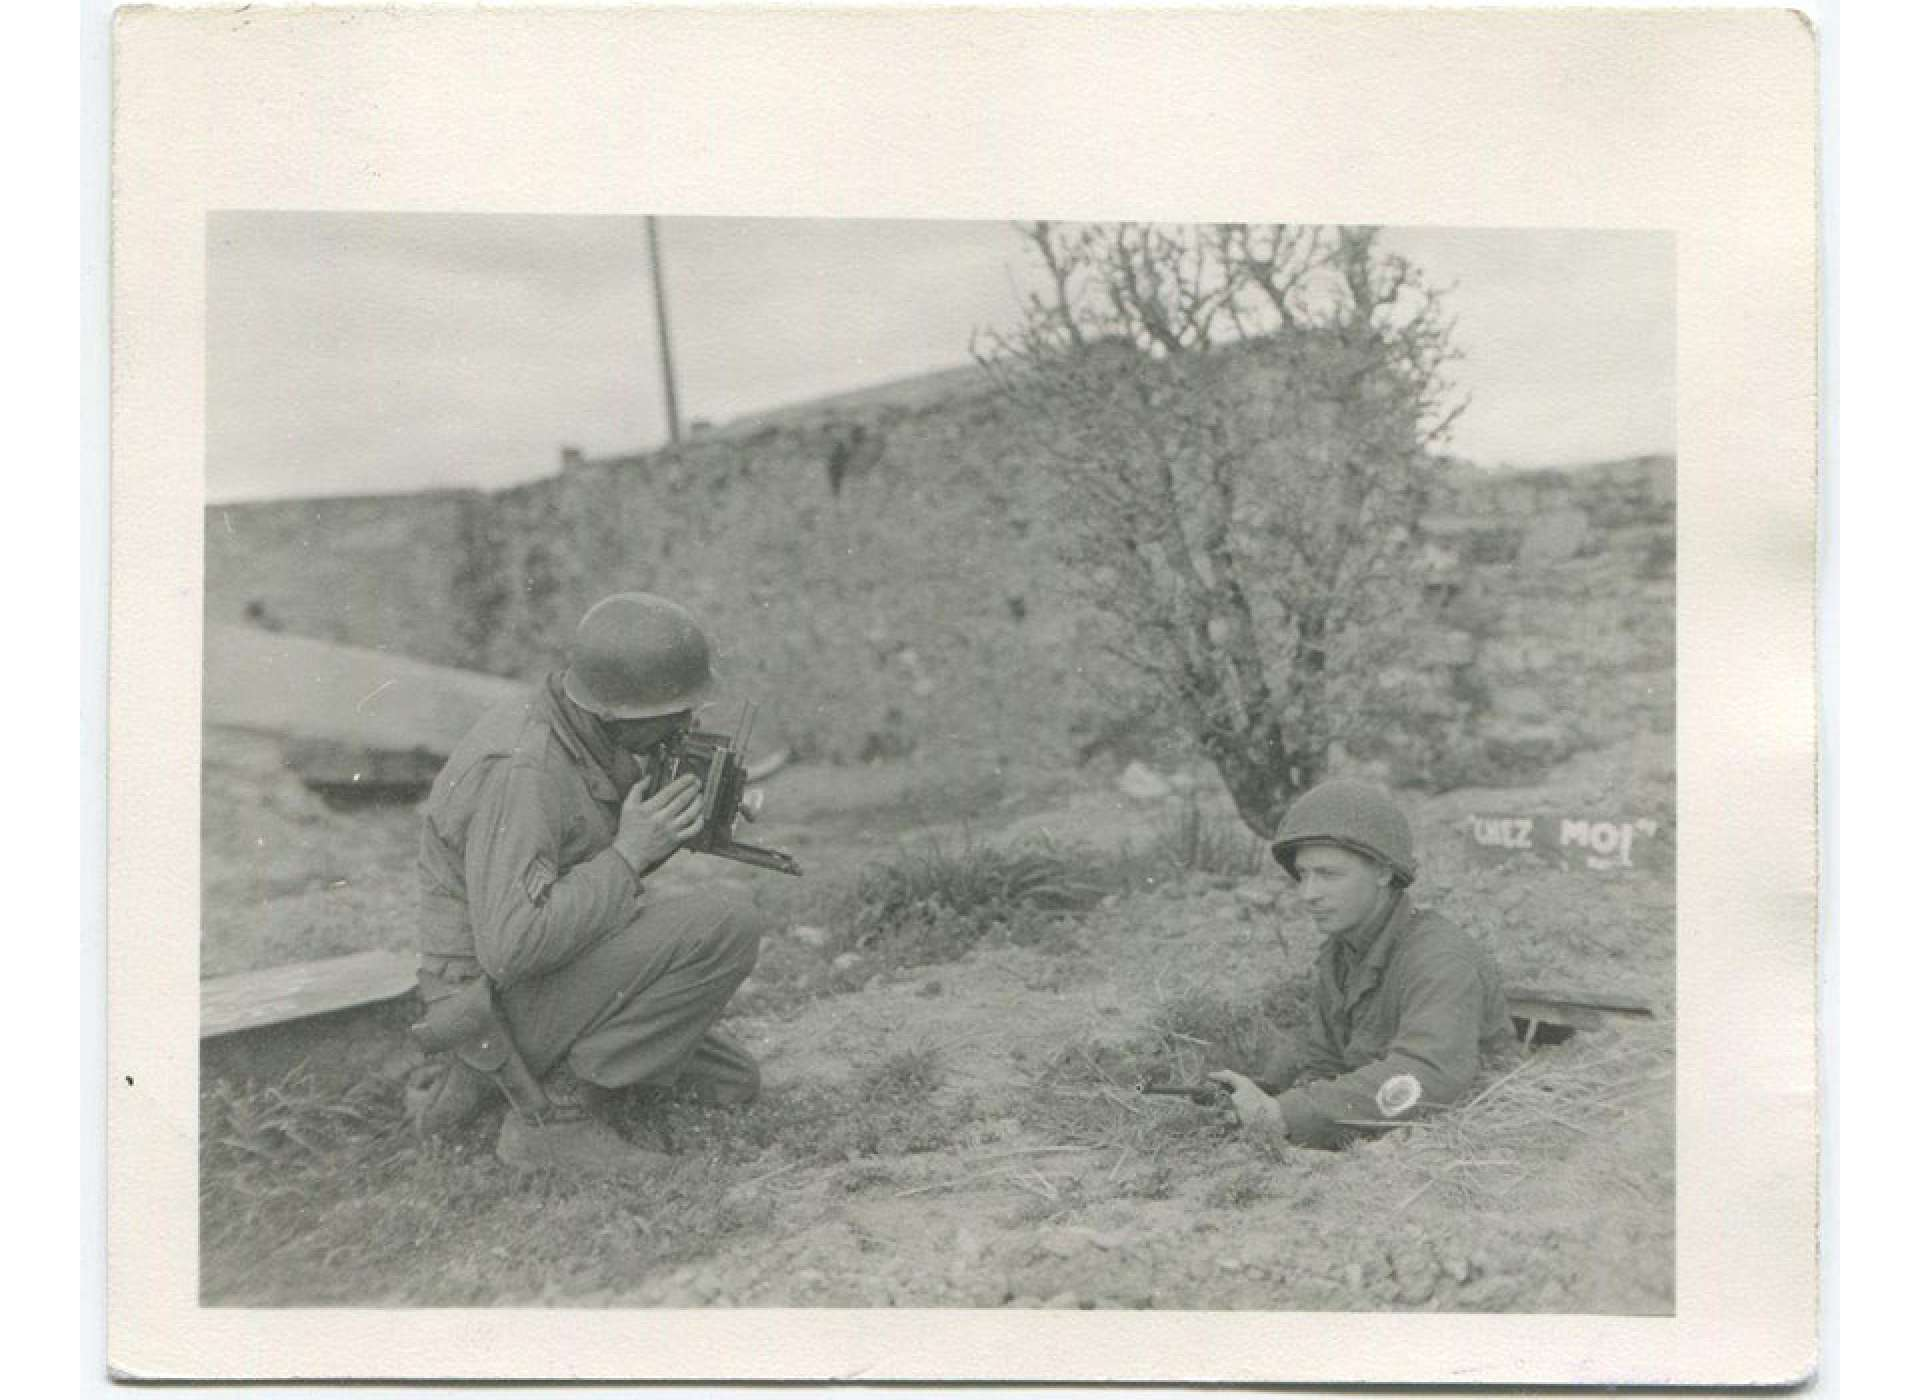 Signal Corps Photographer